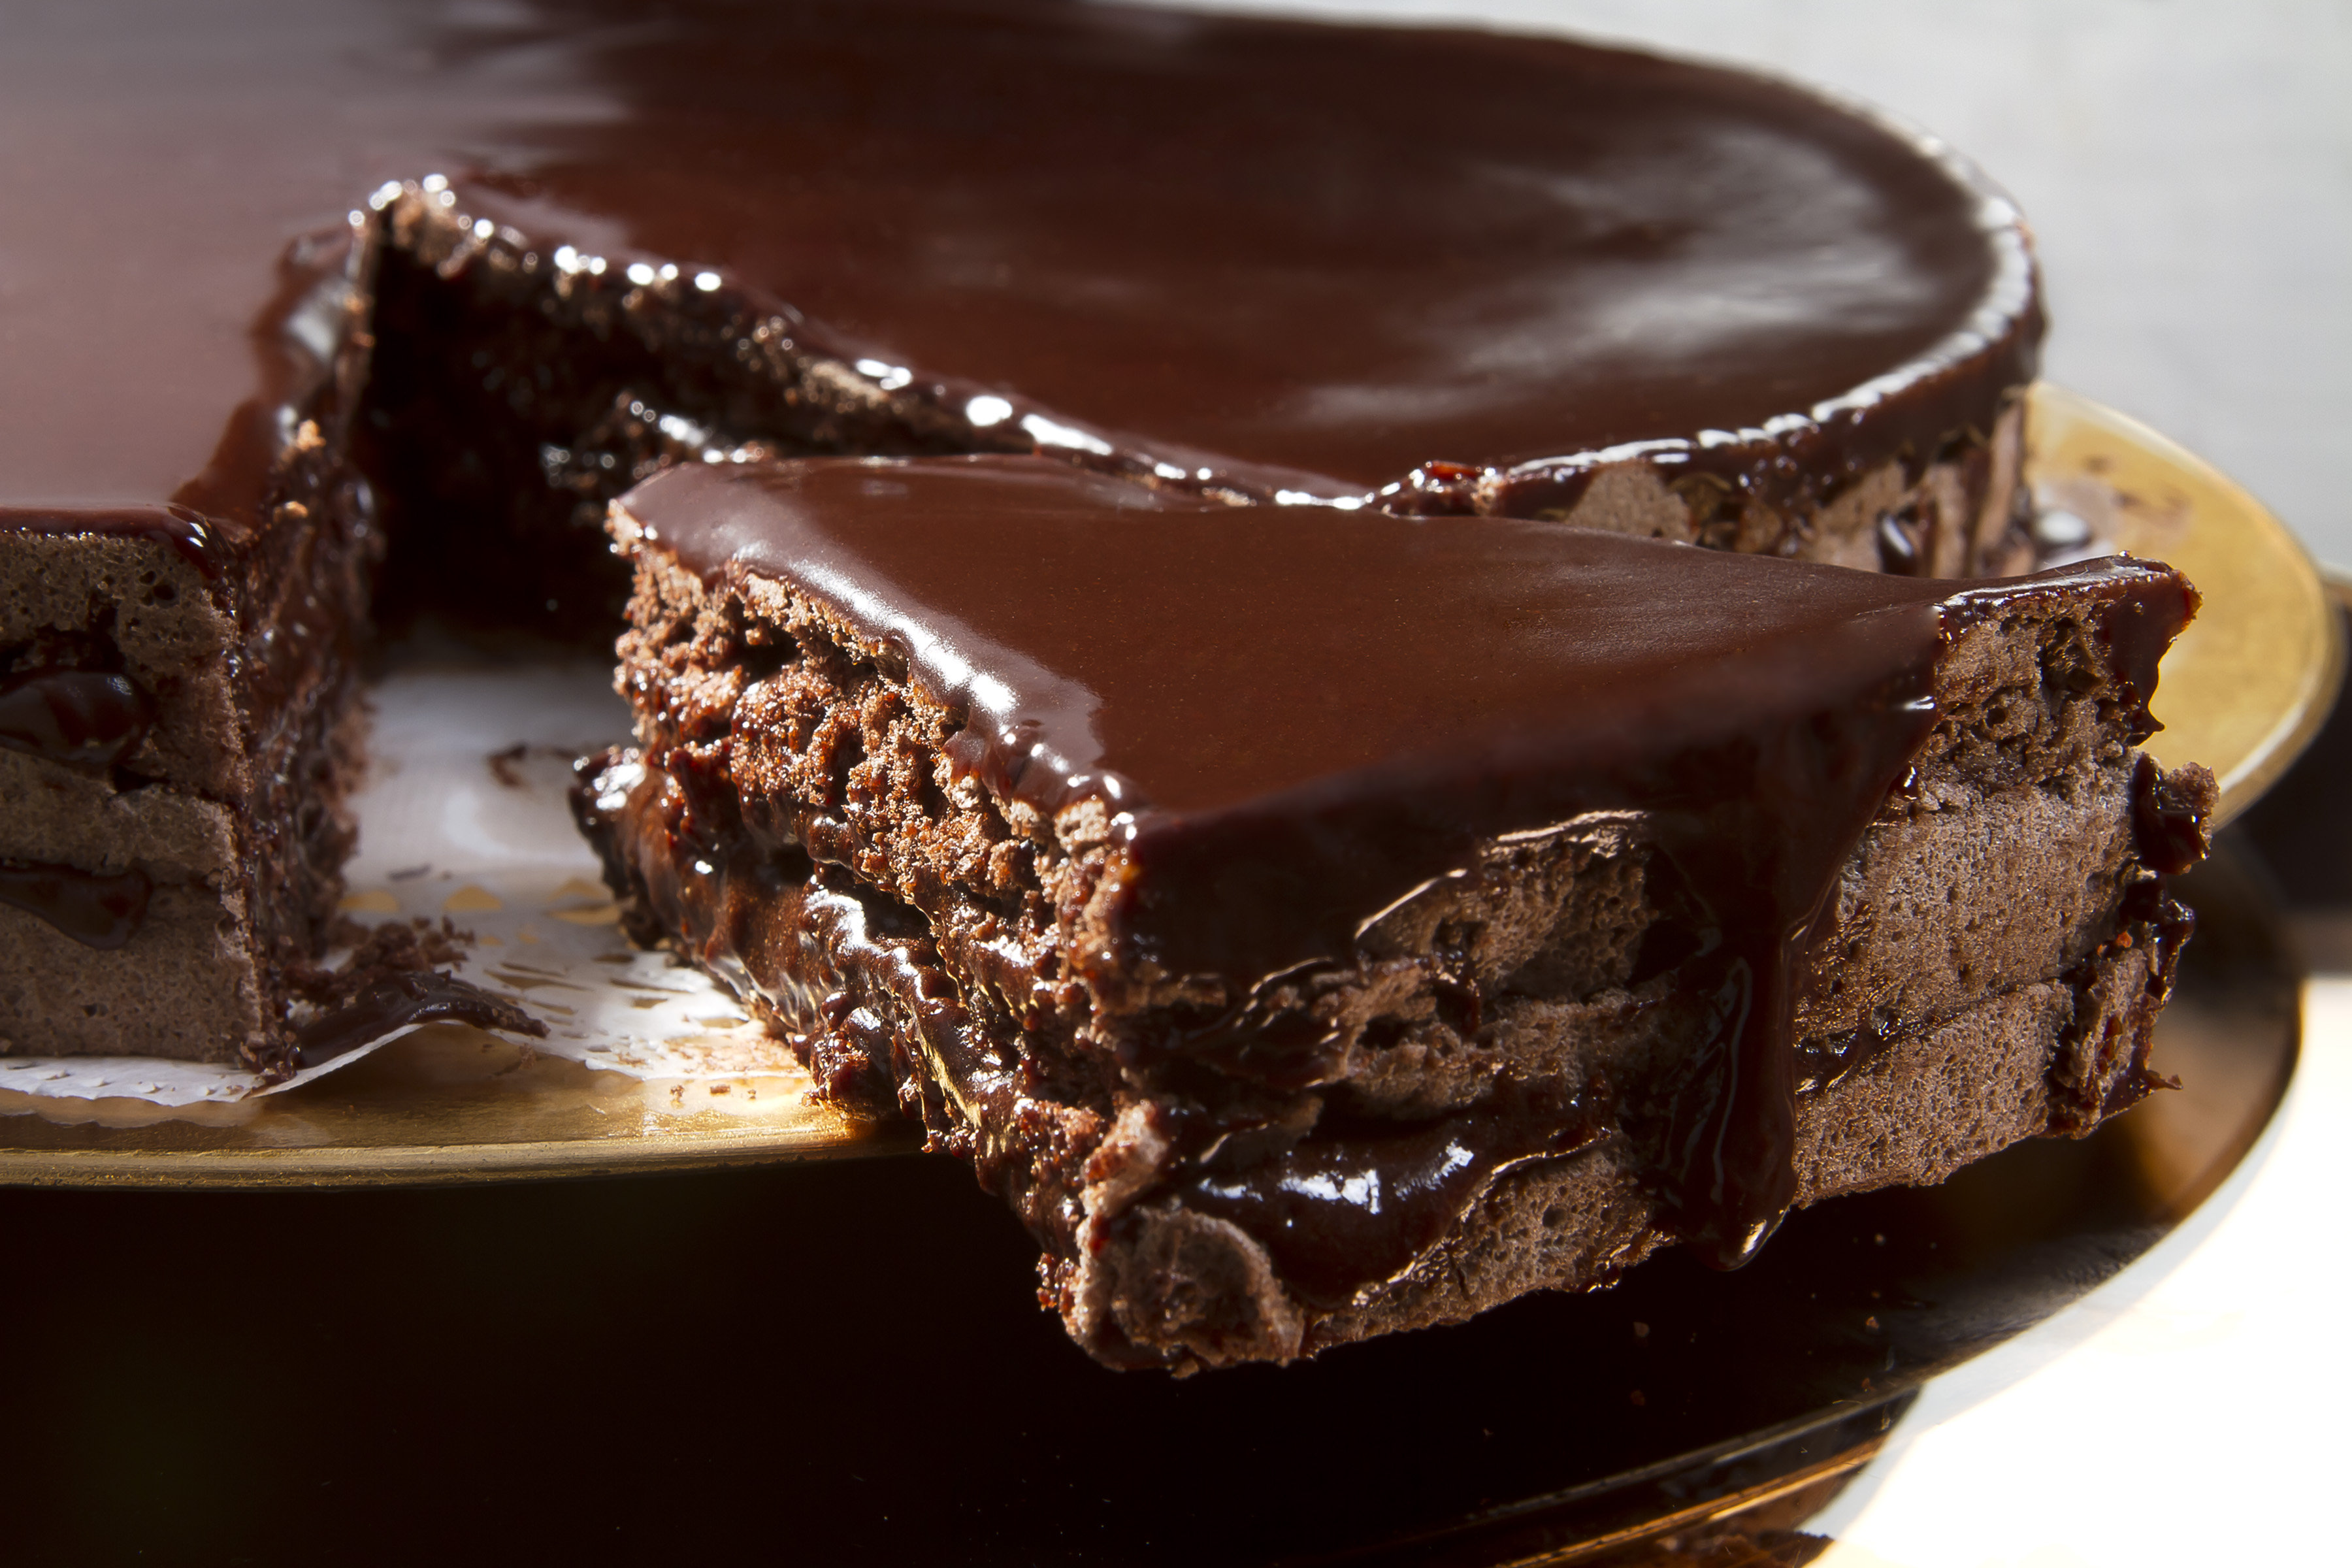 The best chocolate cake in the world restaurant nyc – Sweets ...